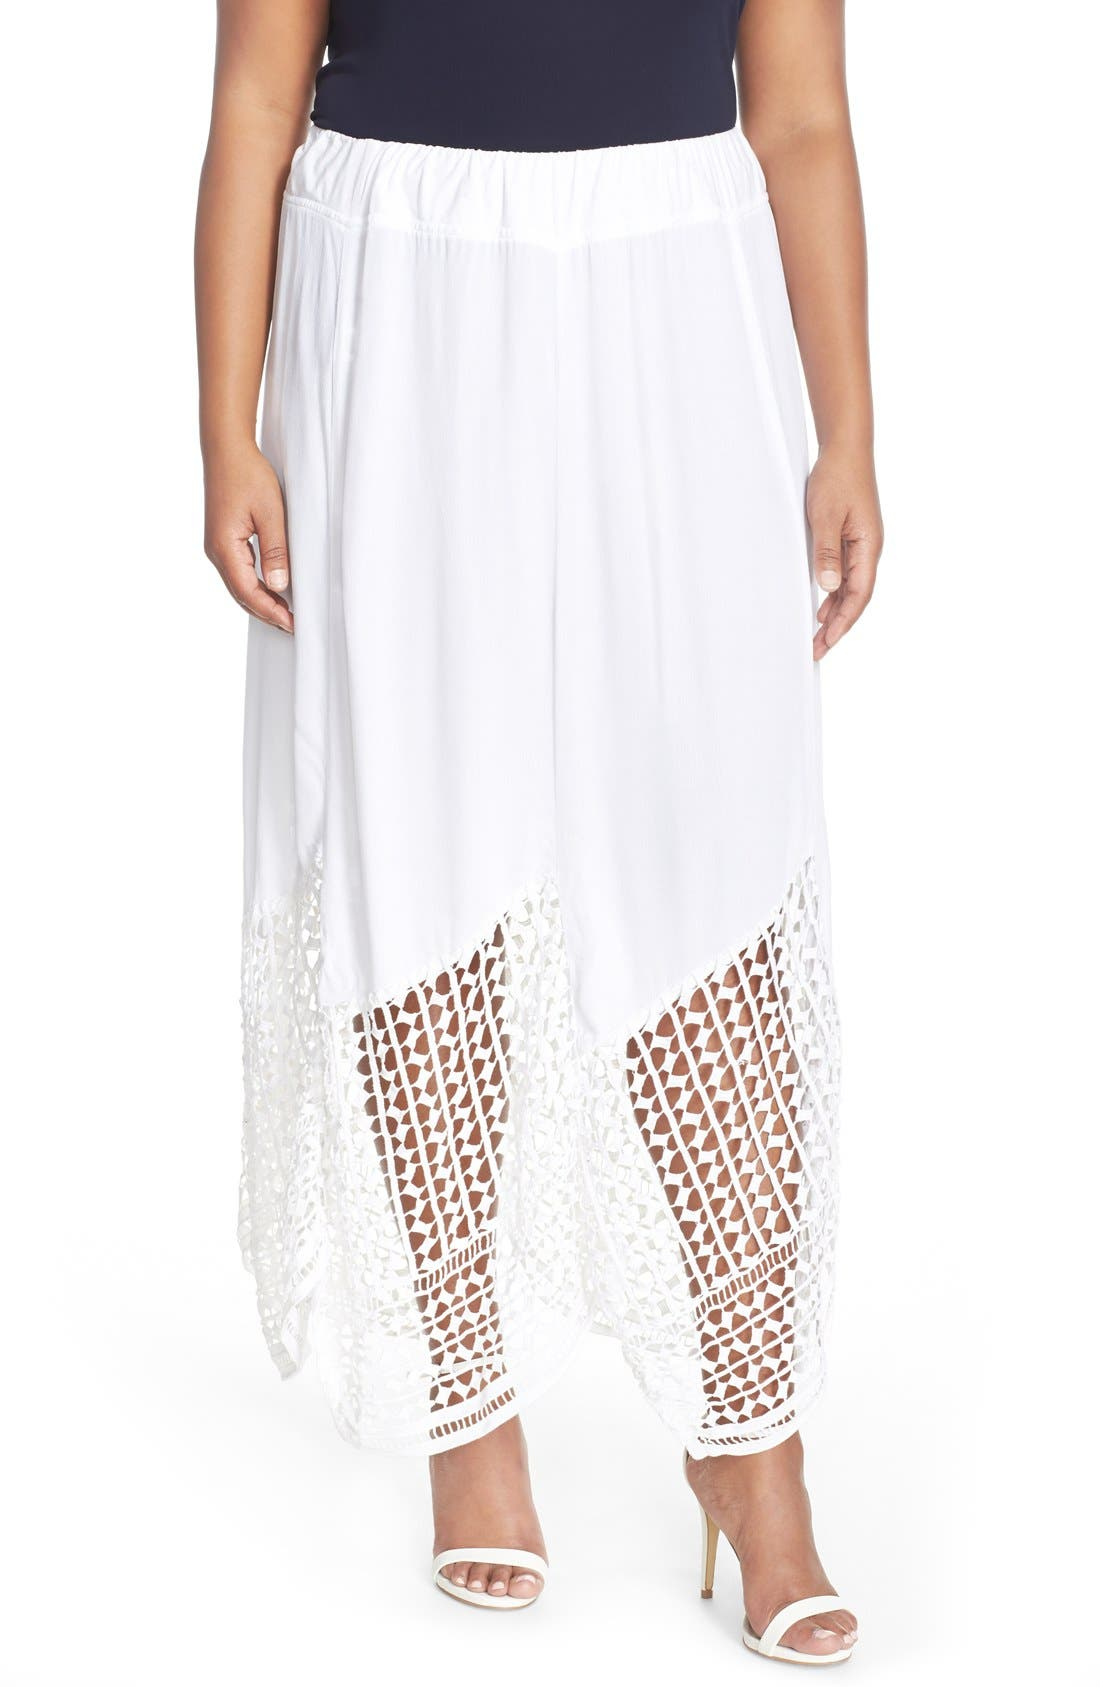 XCVI Wearables 'Lauryn' Lace Border Midi Skirt (Plus Size)